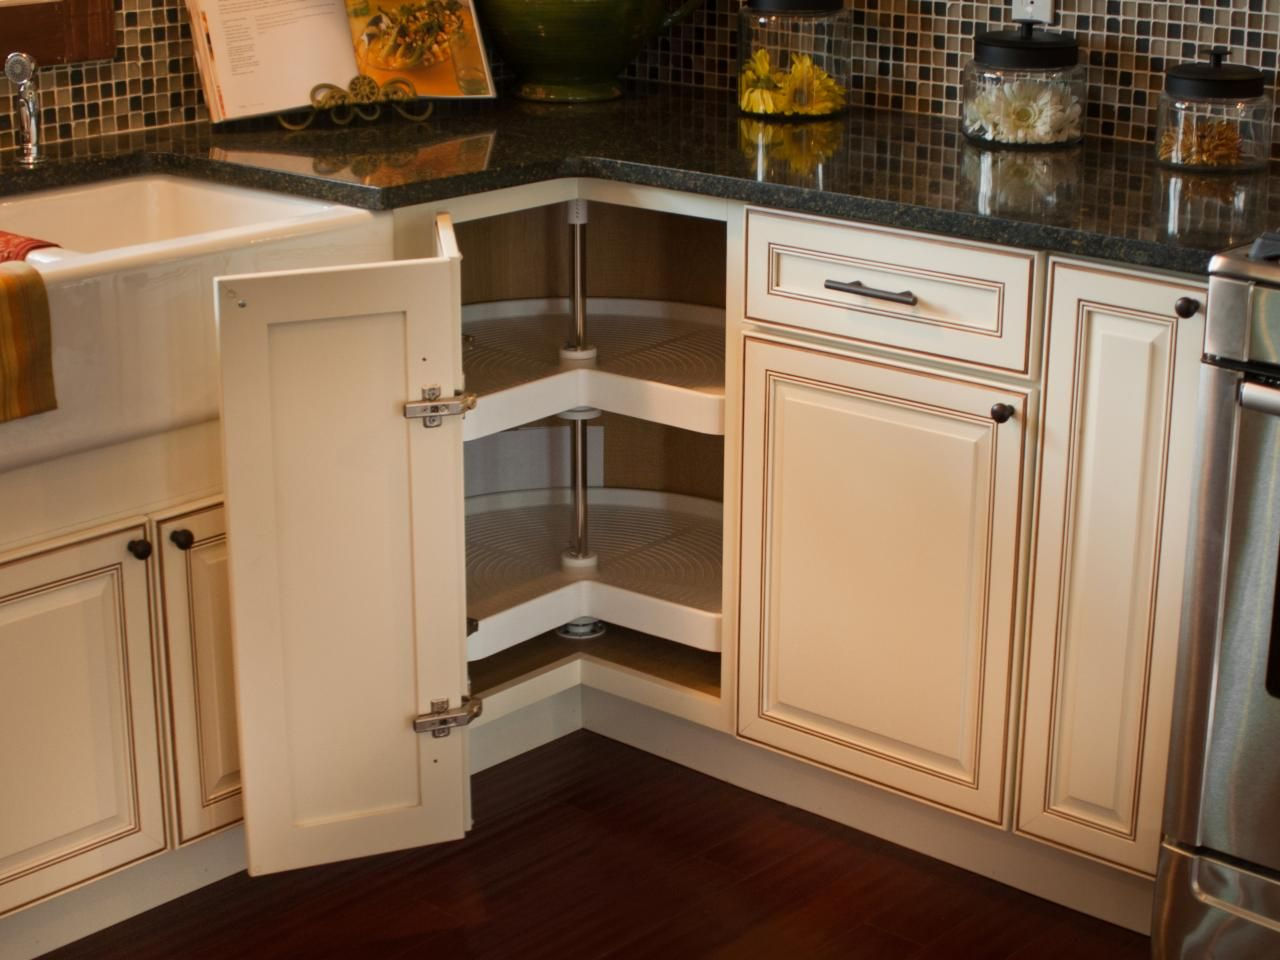 Kitchen Corner Cabinet Ideas New A Corner Cabinet Door Opens To Reveal A Kidneyshaped Lazy Susan Design Ideas